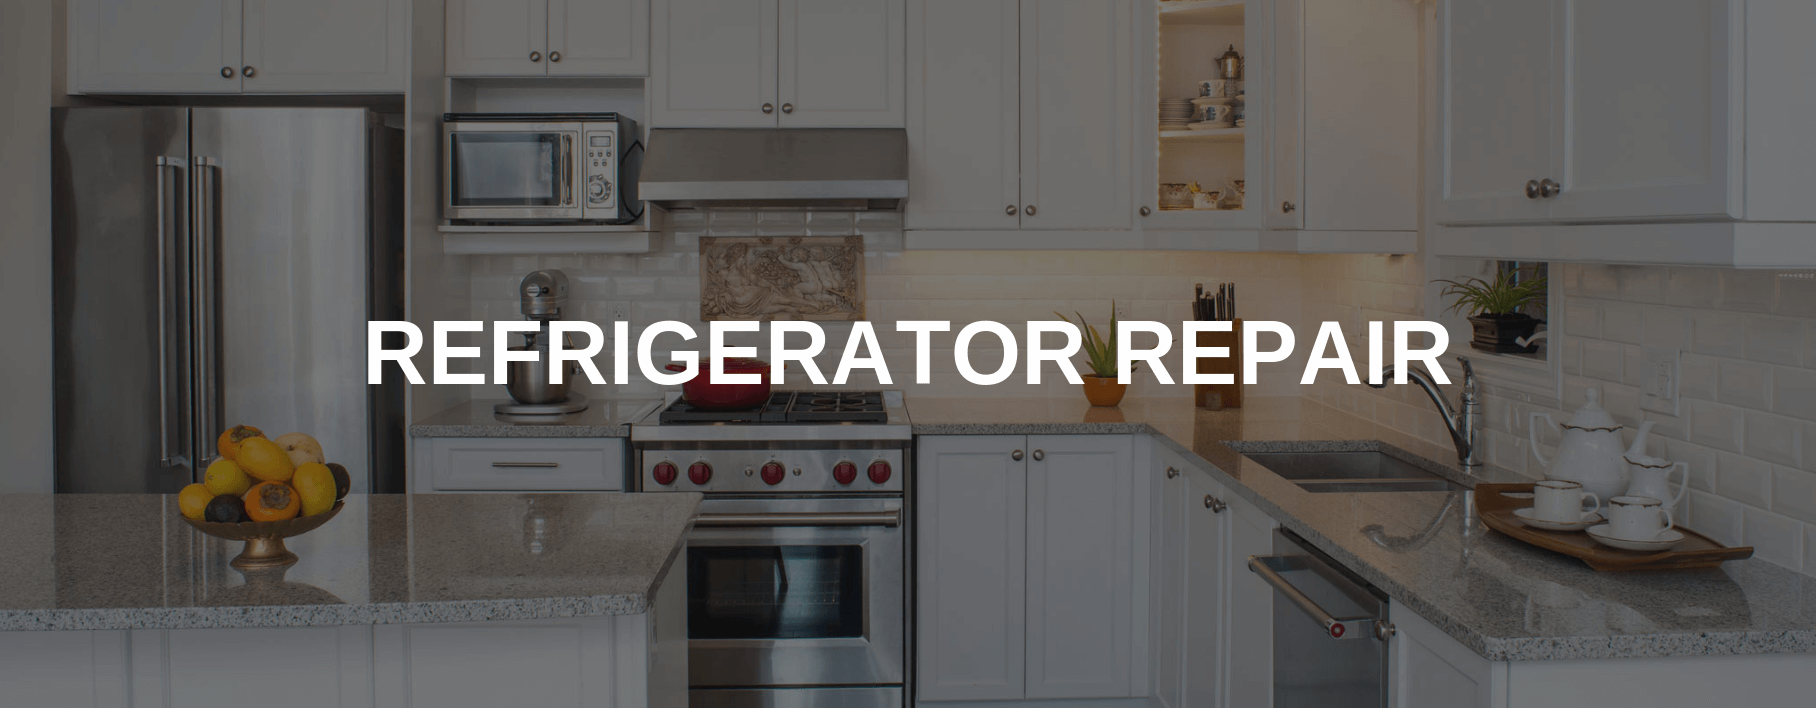 seattle refrigerator repair